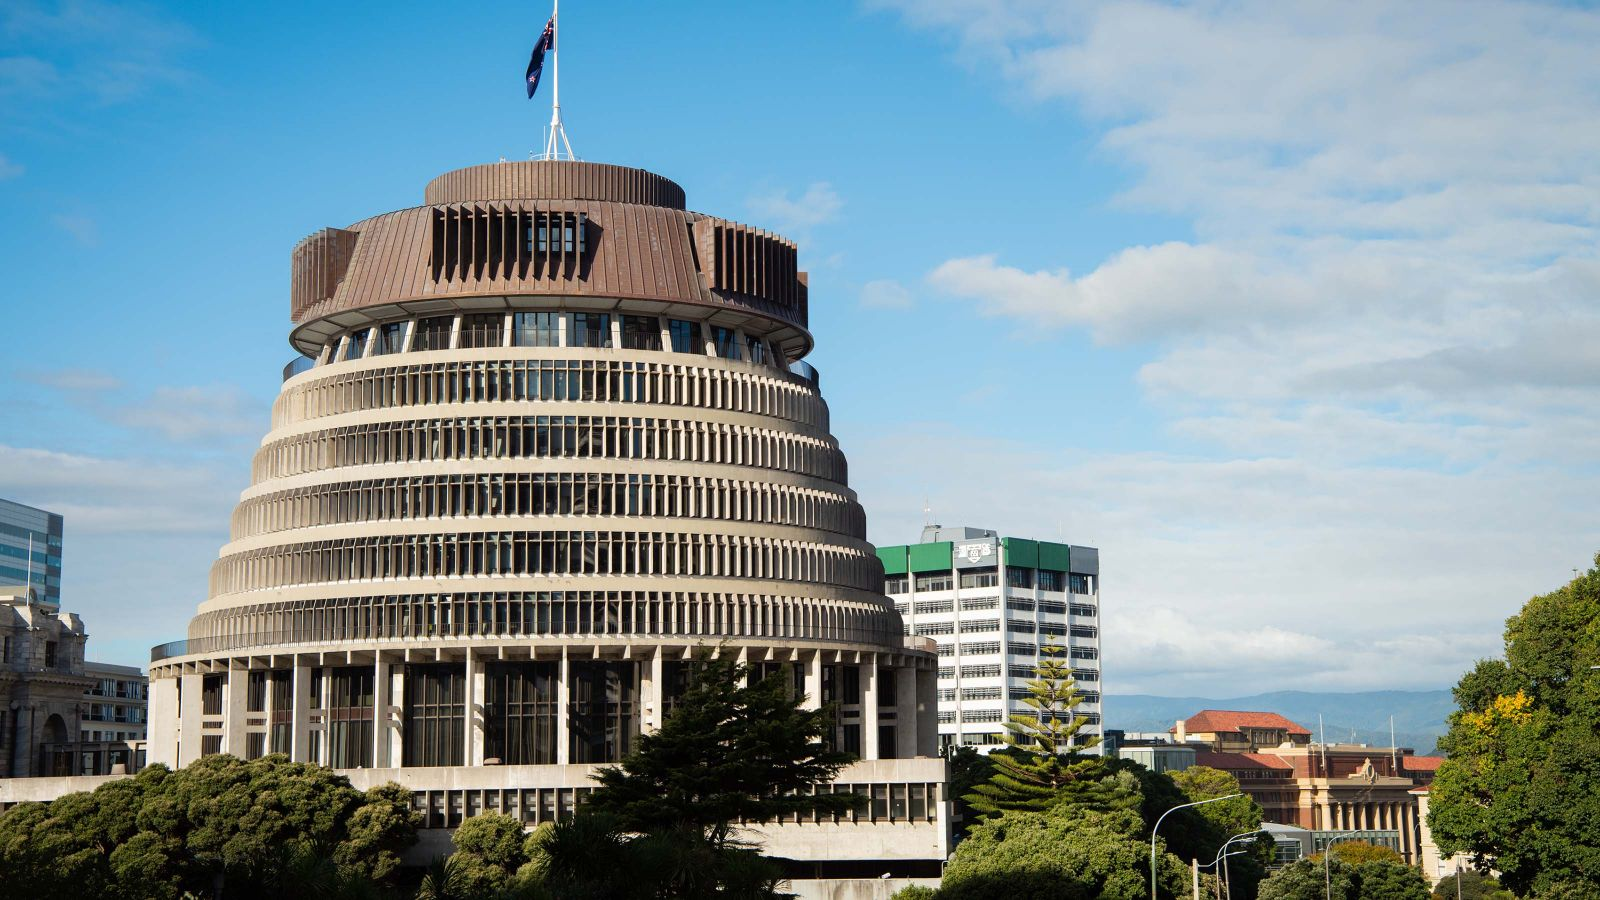 The Beehive, the Executive Wing of New Zealand Parliament Buildings, with Wellington School of Business and Government in the background.